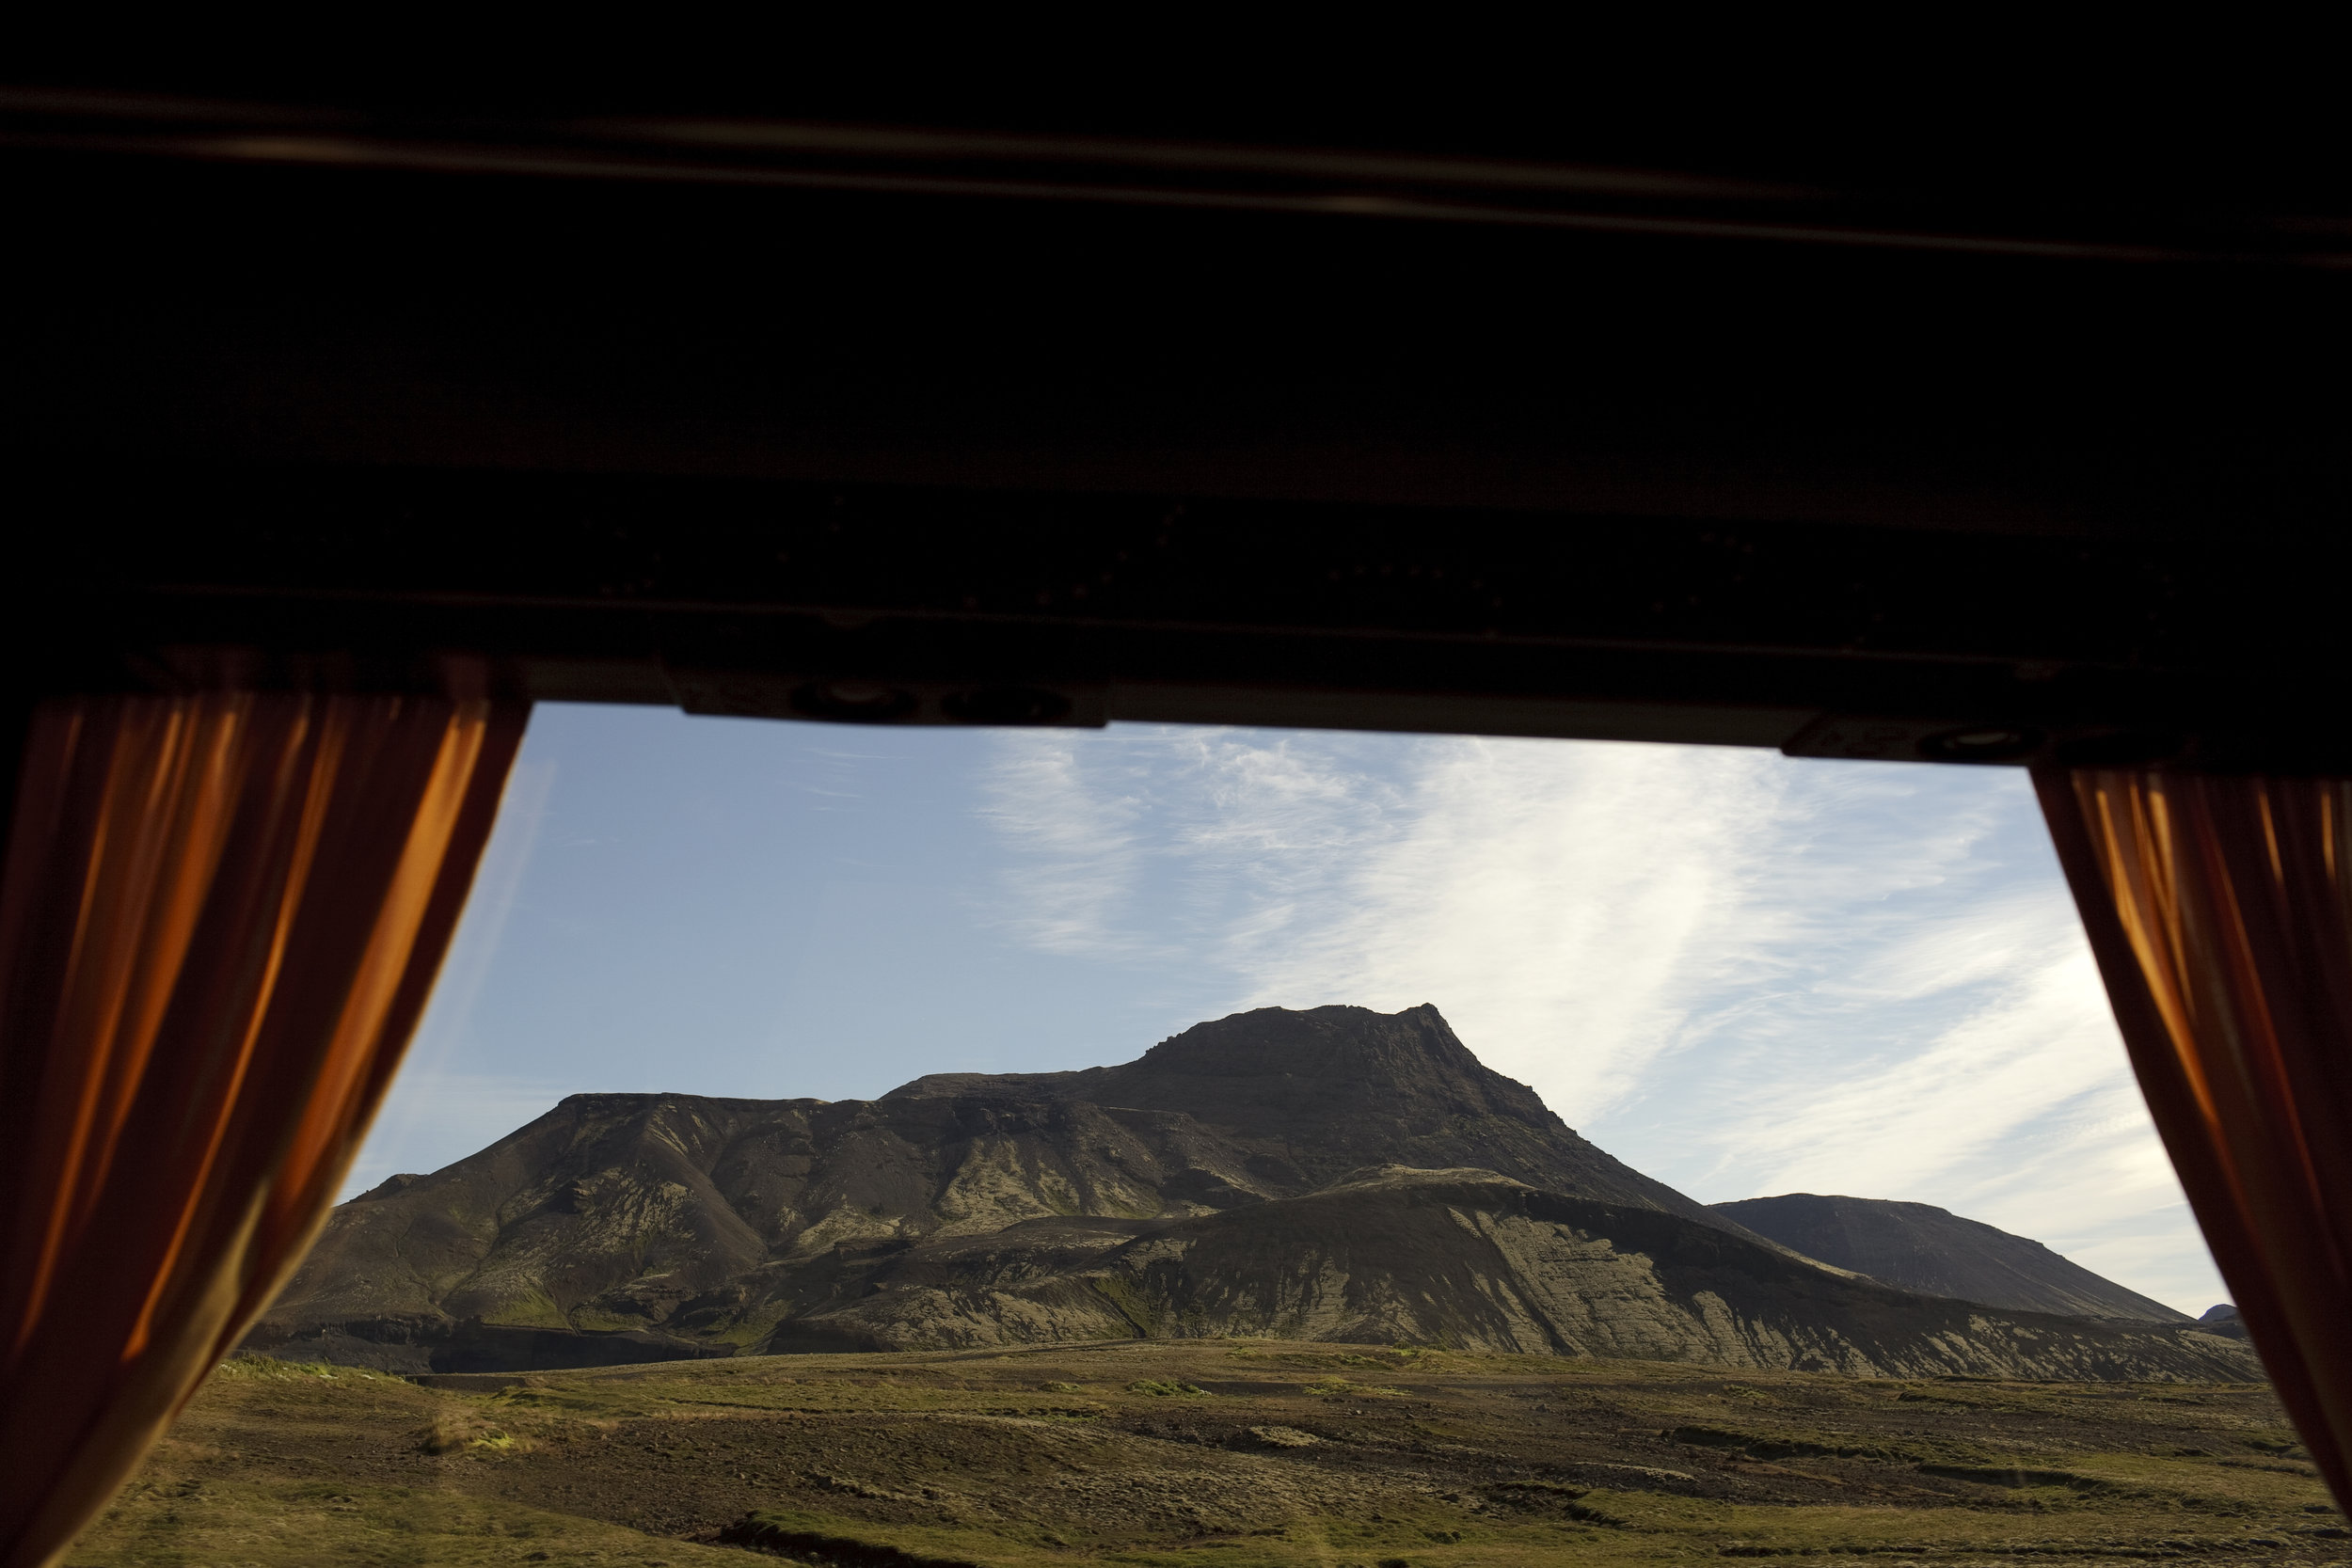 A mountain view from a bus window, headed back into Reykjavik from a small town in southern Iceland.